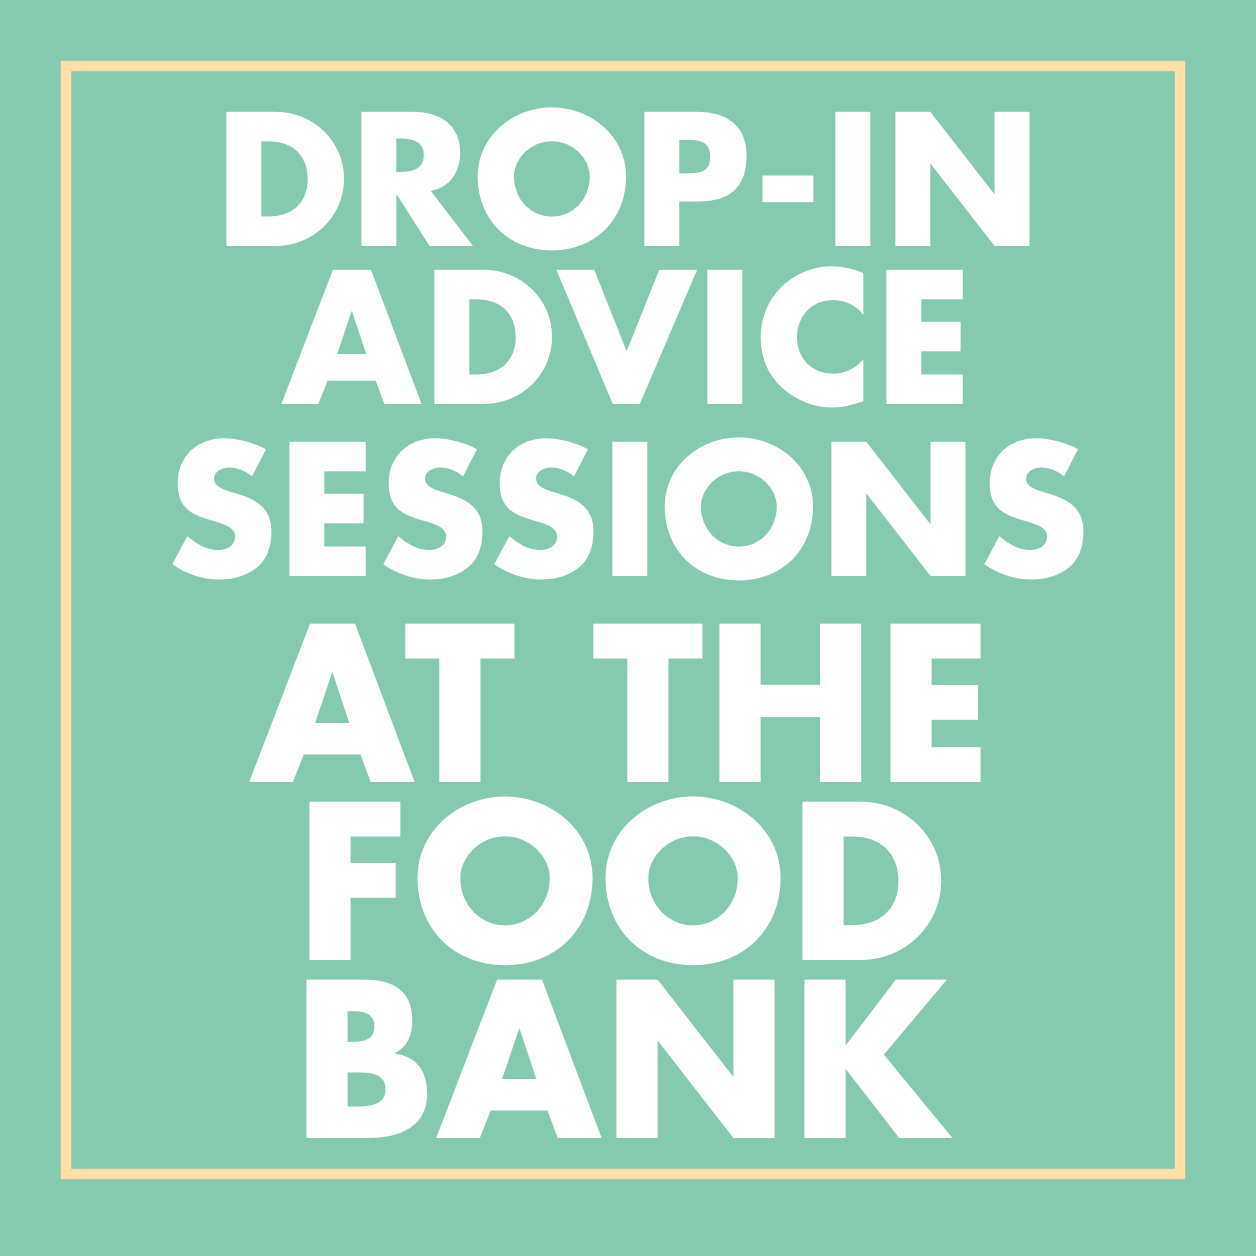 Advice Drop In Sessions (July-September) for voucher holders